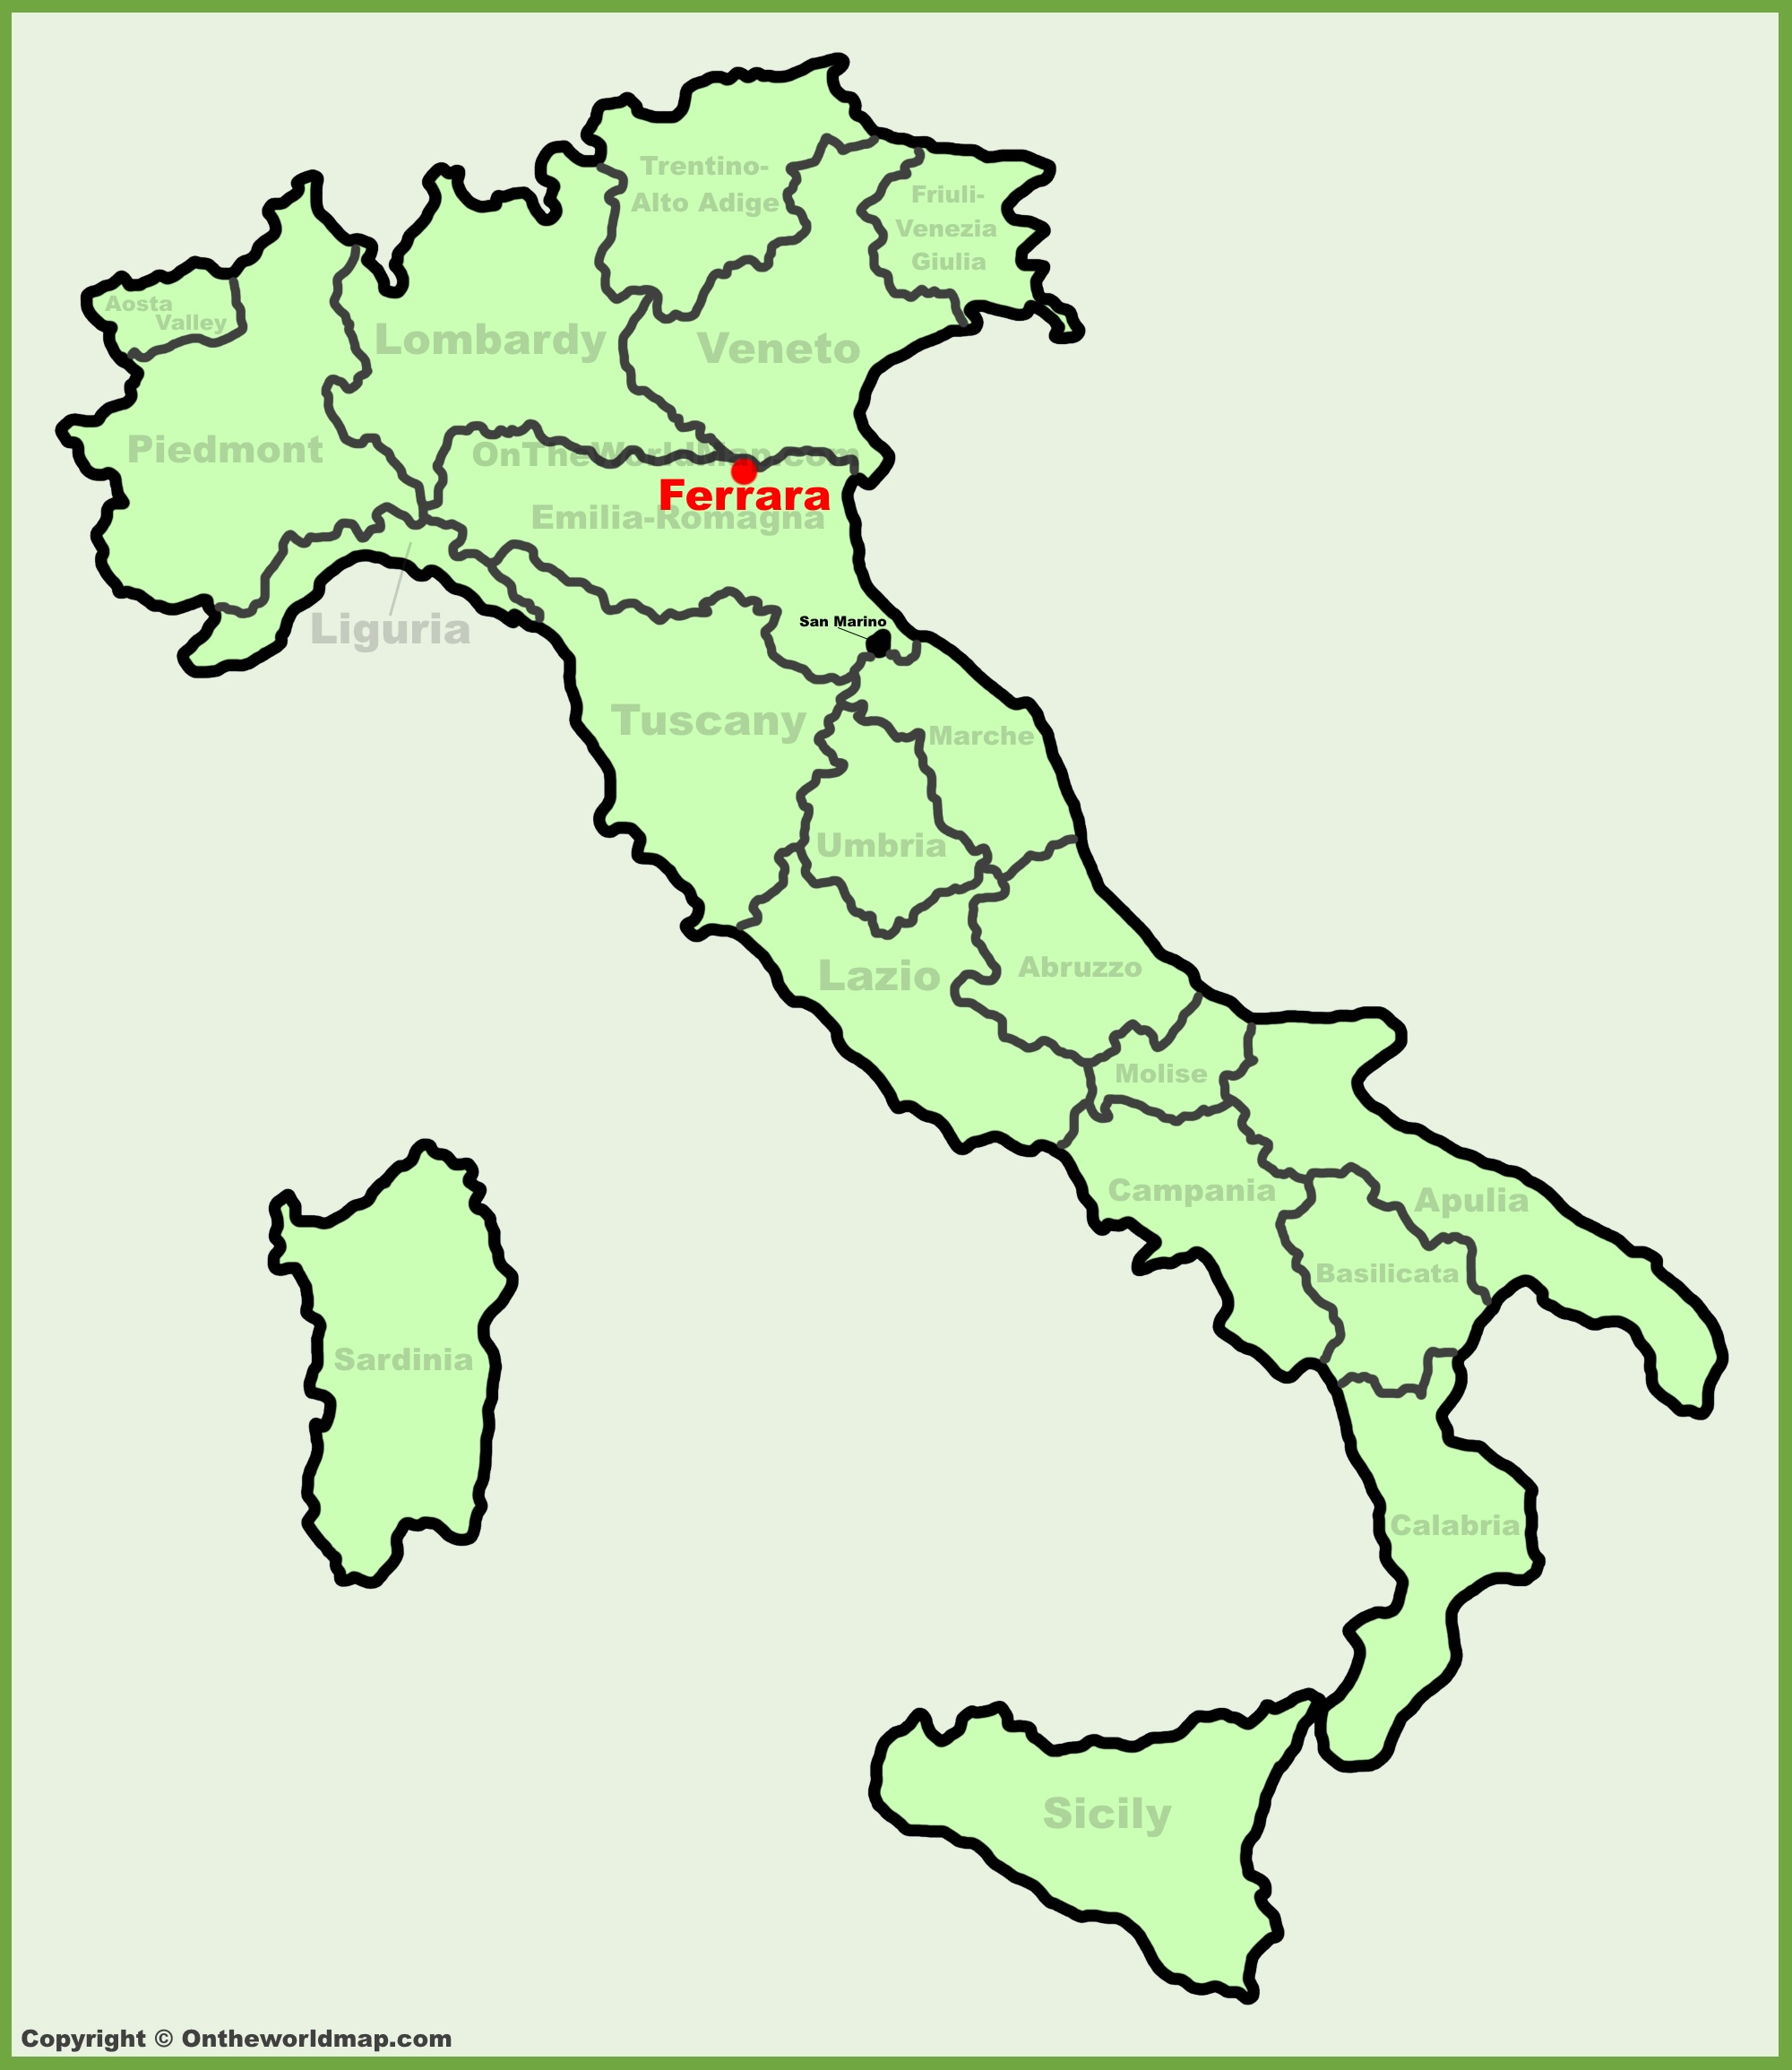 Ferrara location on the Italy map